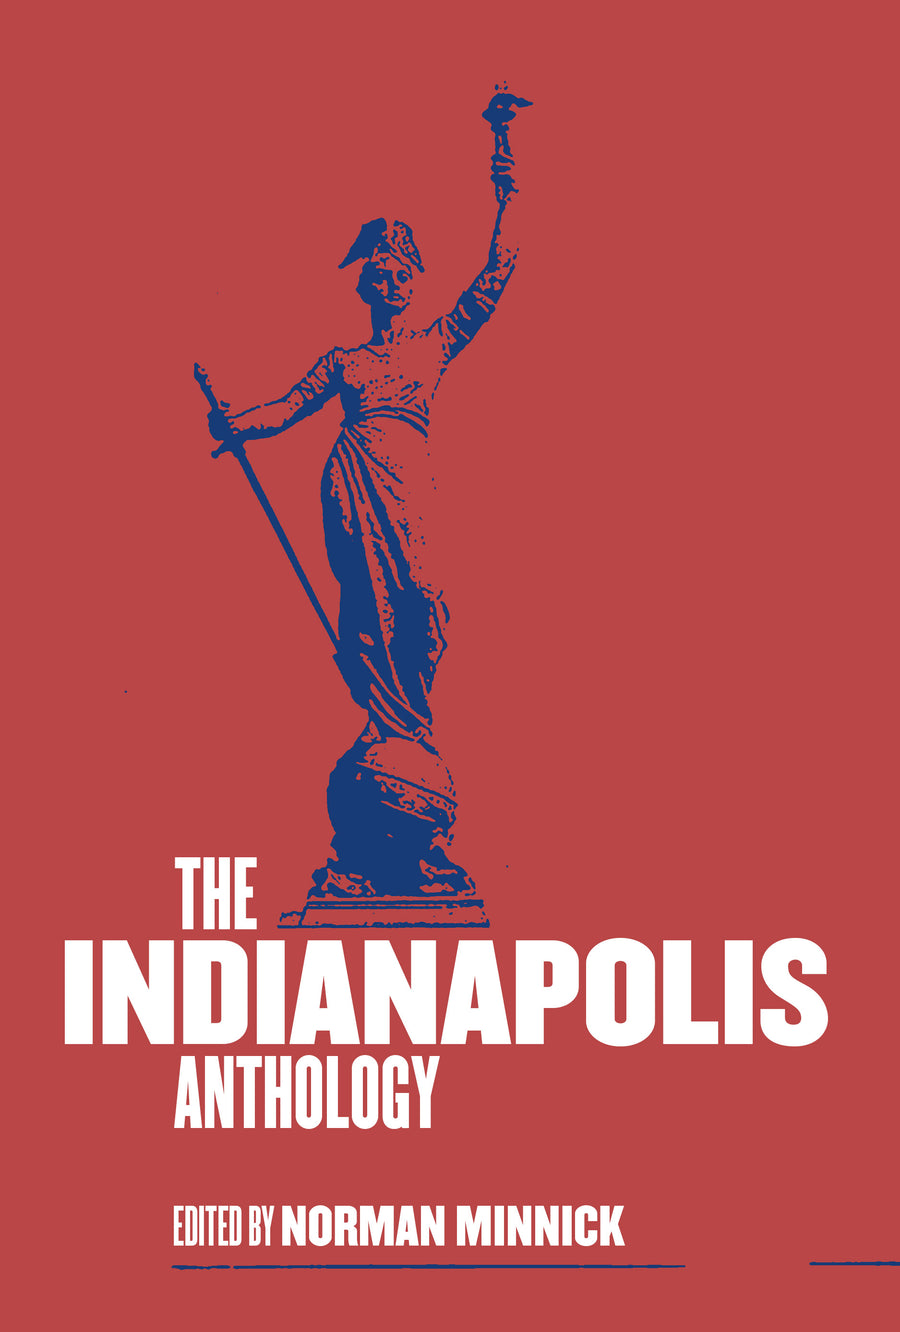 The Indianapolis Anthology